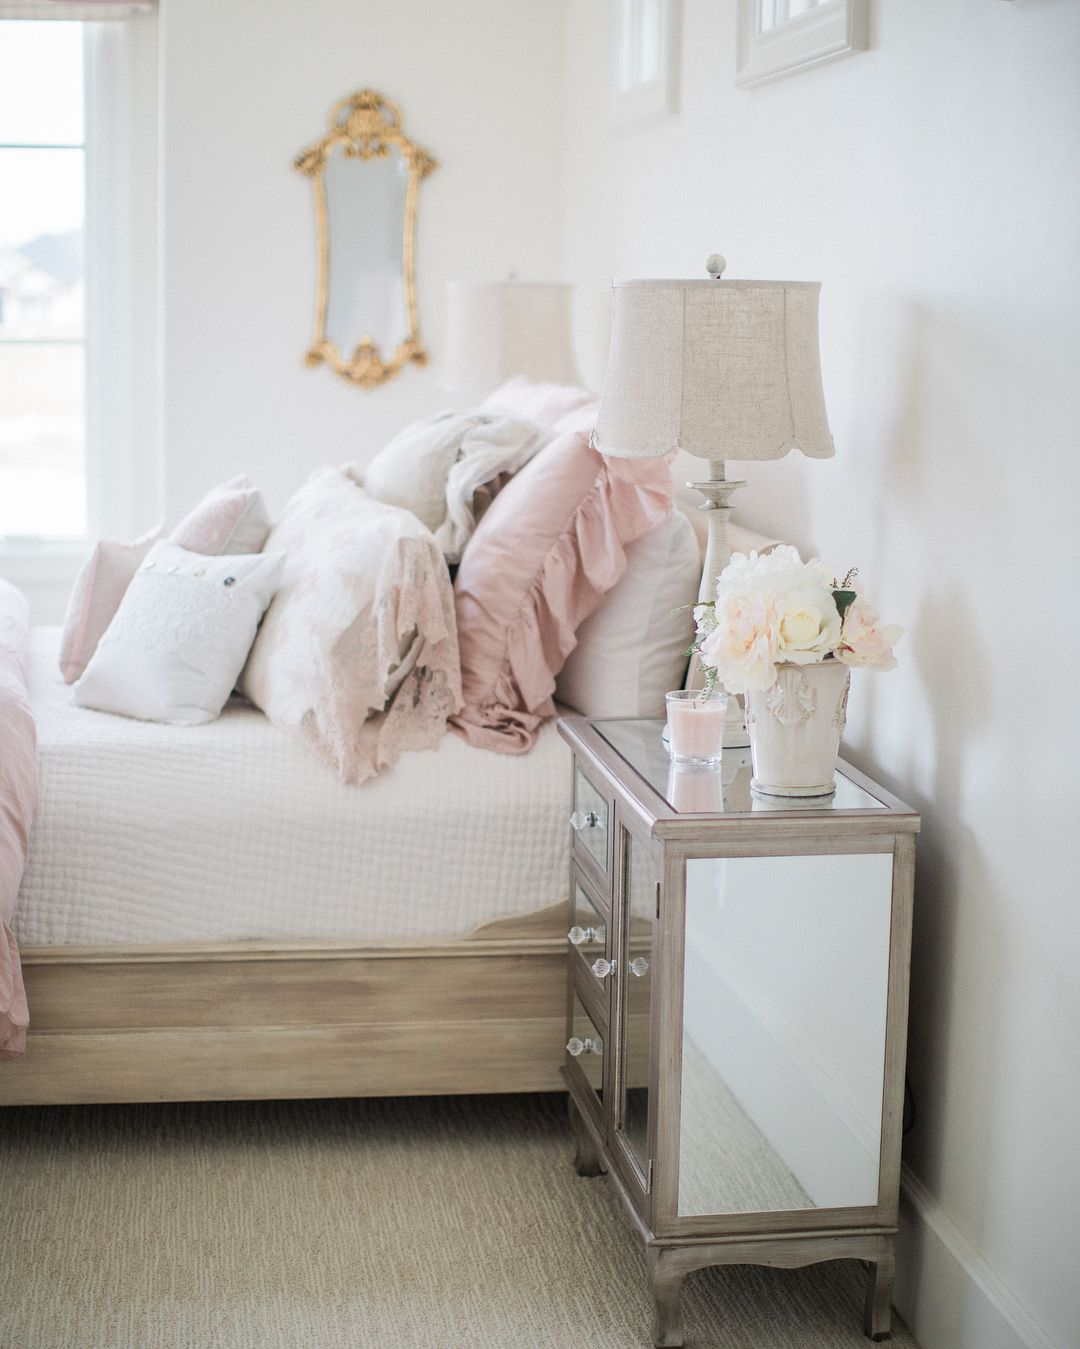 Get The Look Lovely Country French Bedroom Decorating With Gentle Palette Hello Lovely In 2020 French Country Bedrooms Tranquil Bedroom Country Girl Bedroom